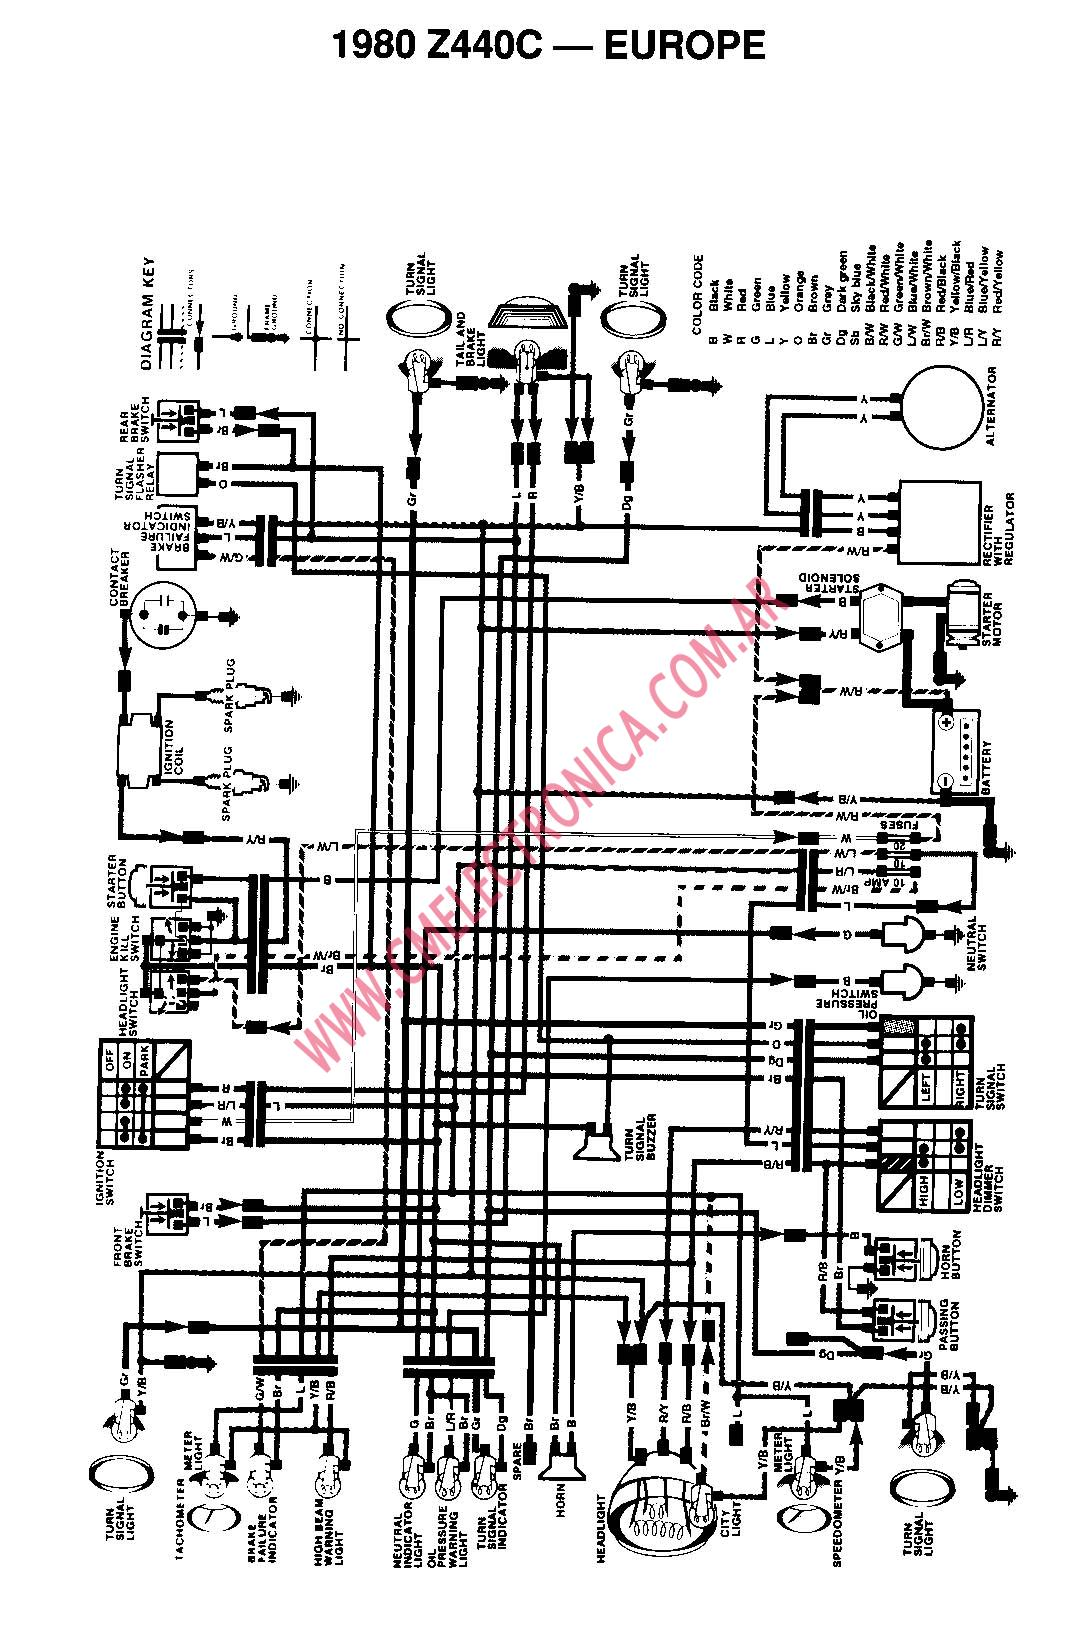 Kawasaki Bayou Engine Diagram Wiring Library Motorcycle Parts 2005 Kdx220a12 Kdx220r Covers Diagrama Z440c